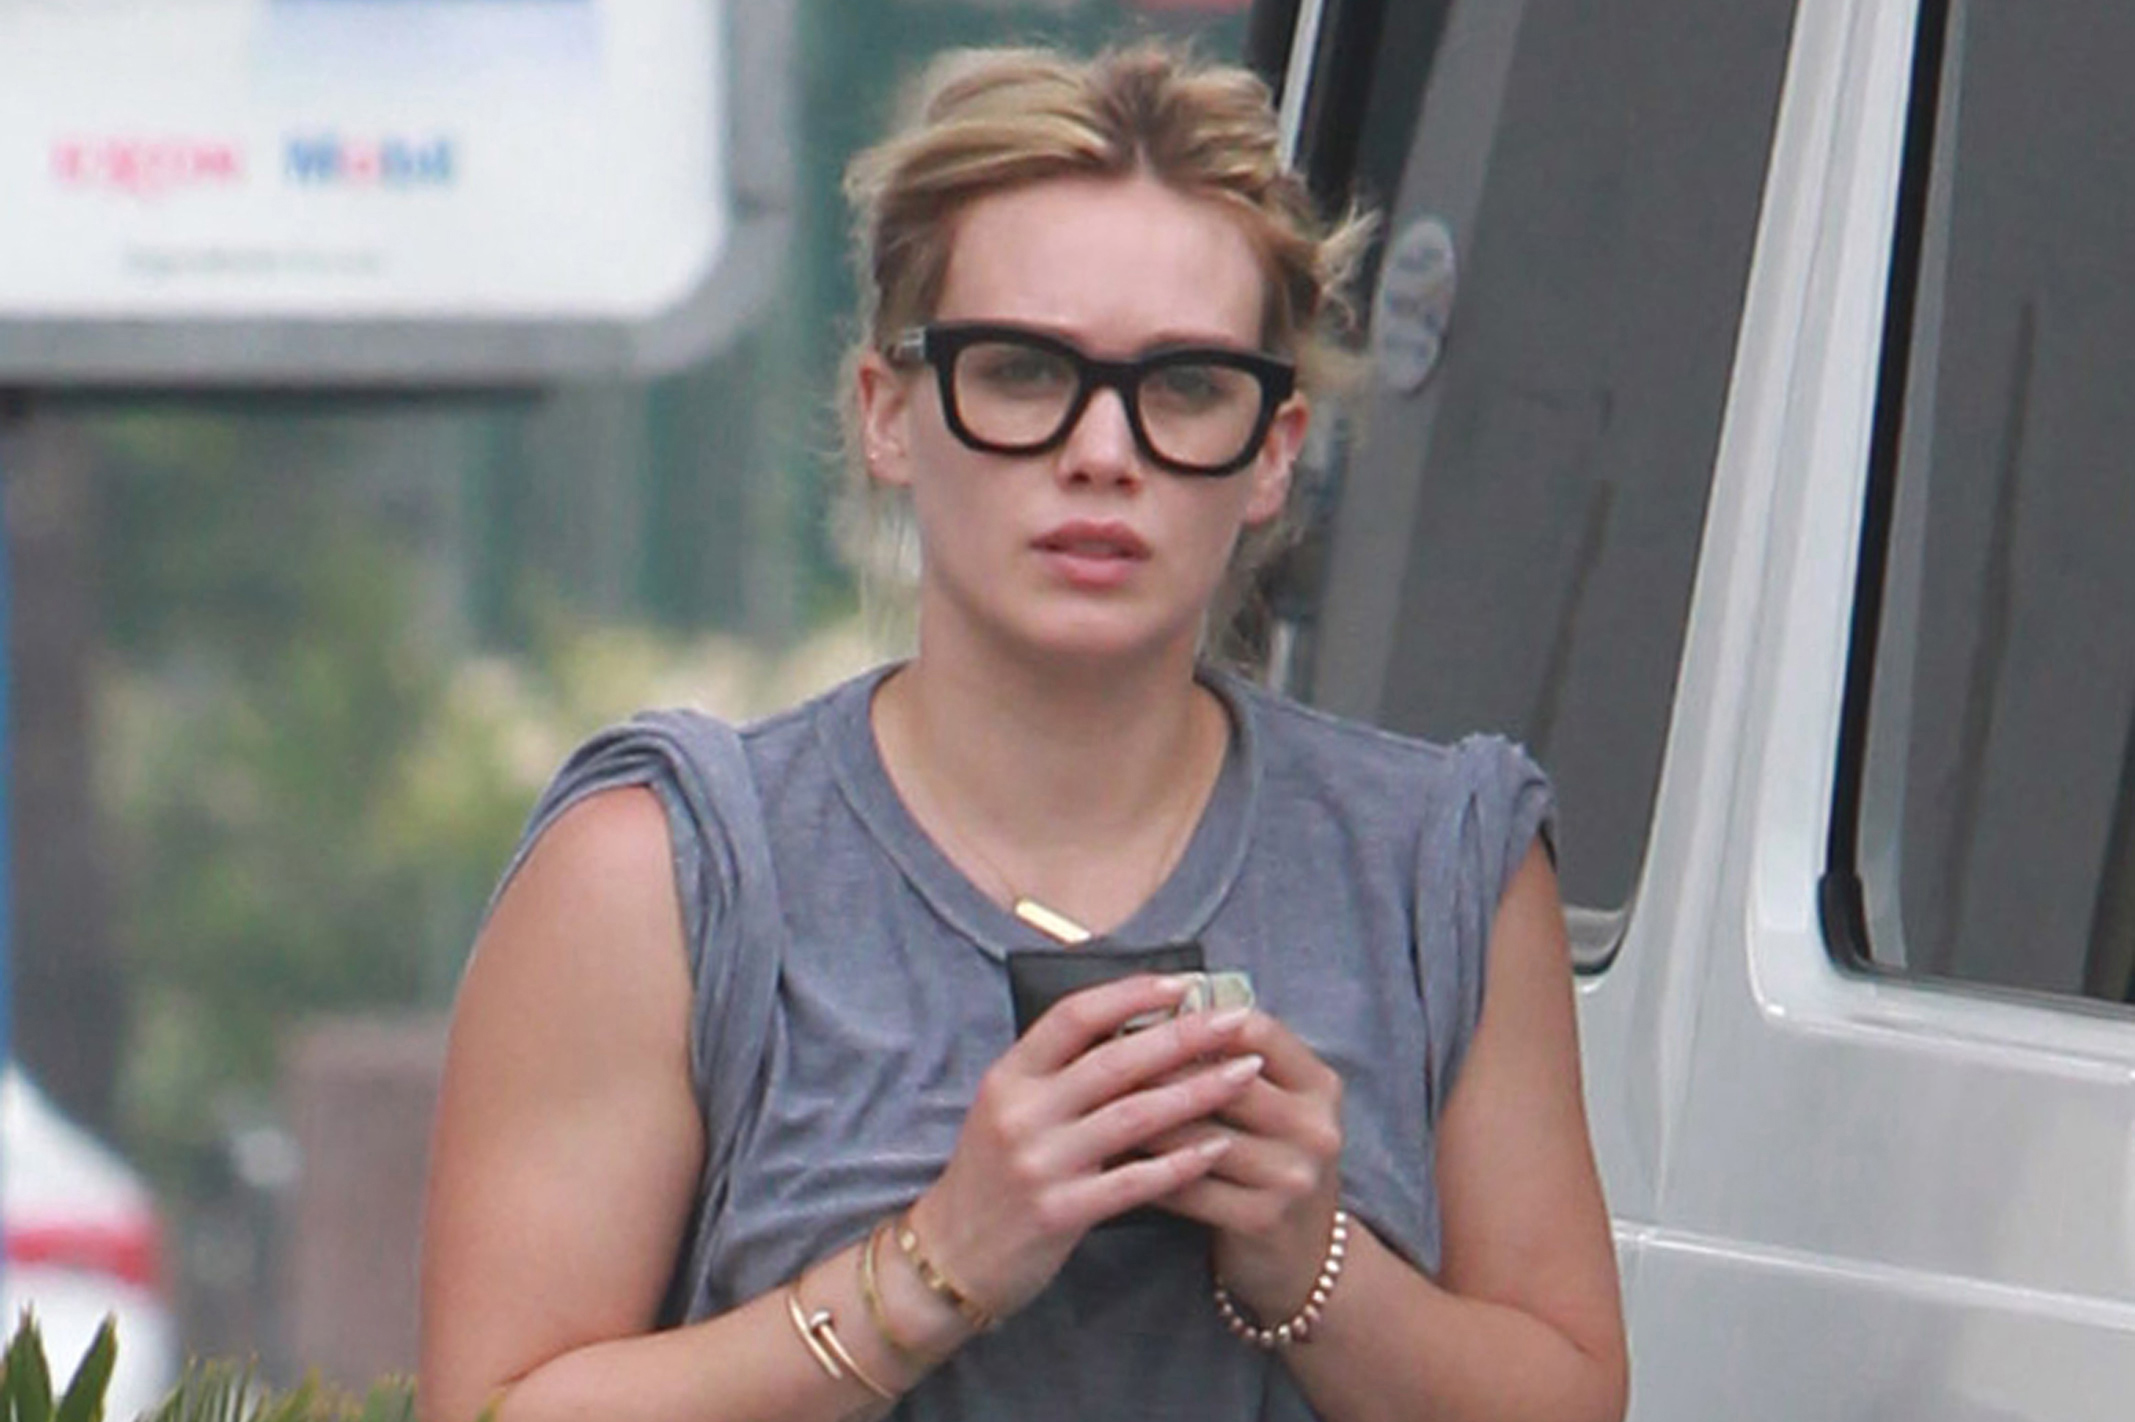 hilary-duff-glasses-19420.jpg